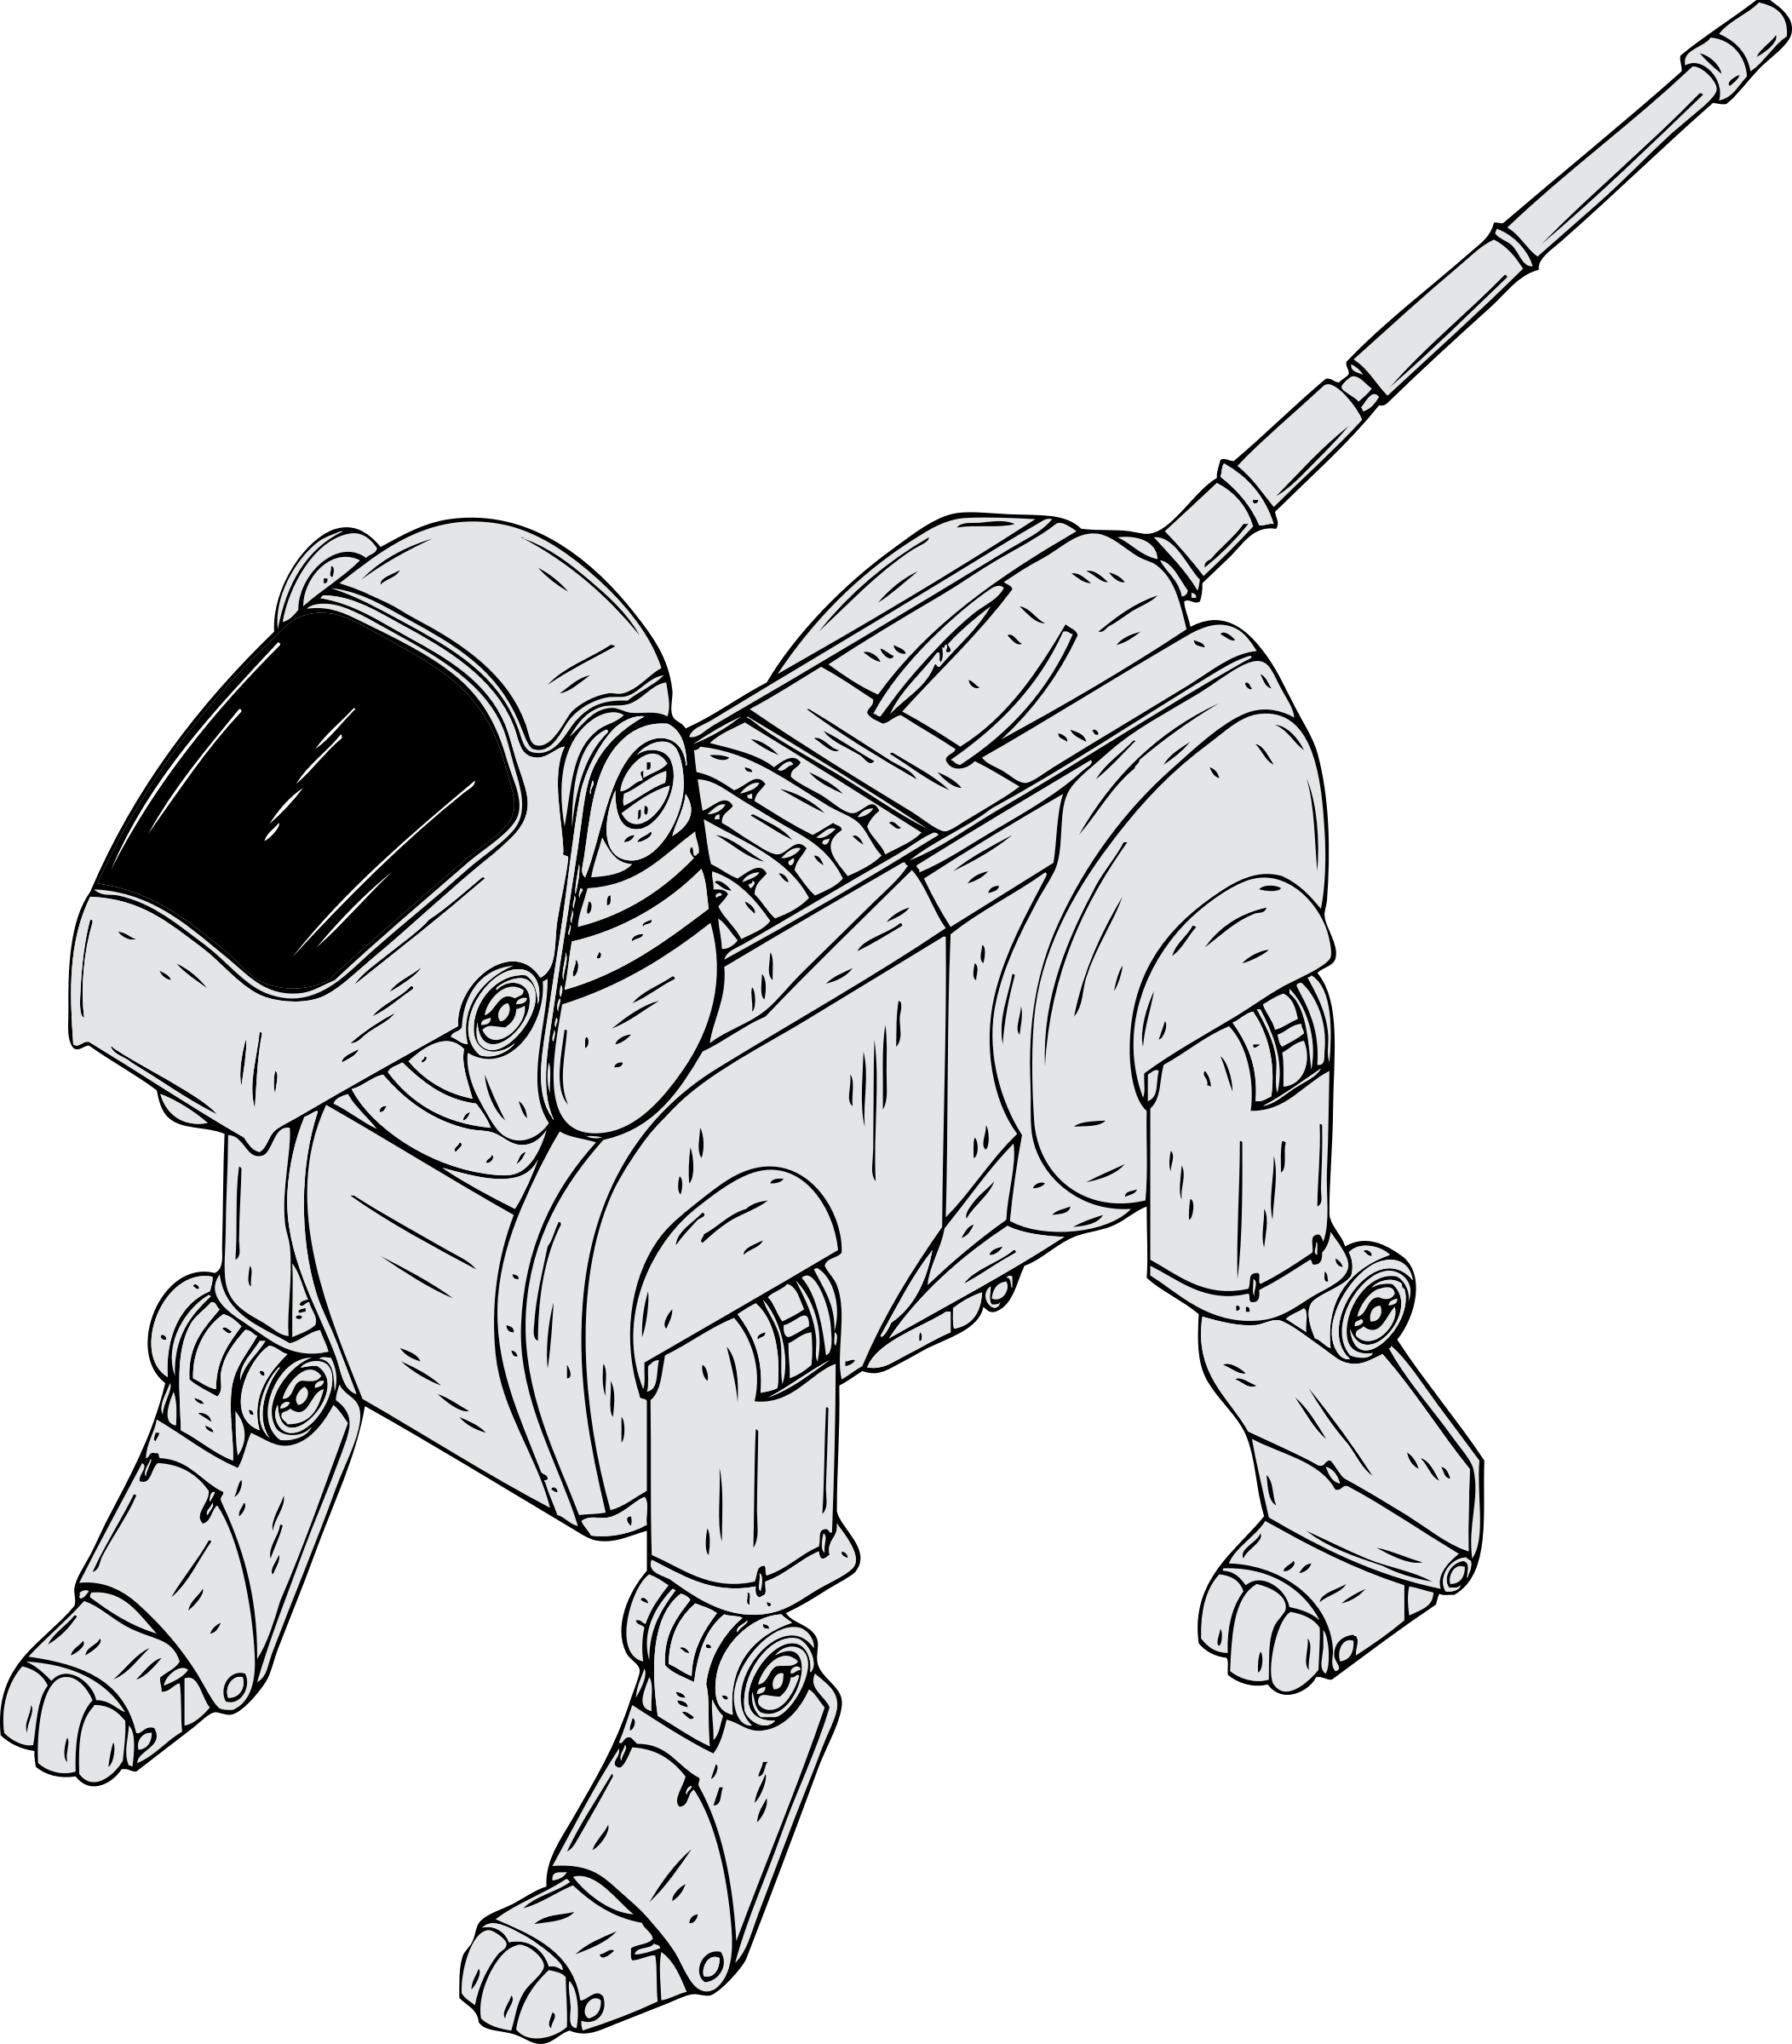 Robotic dog clipart image free stock Clipart - robot dog image free stock